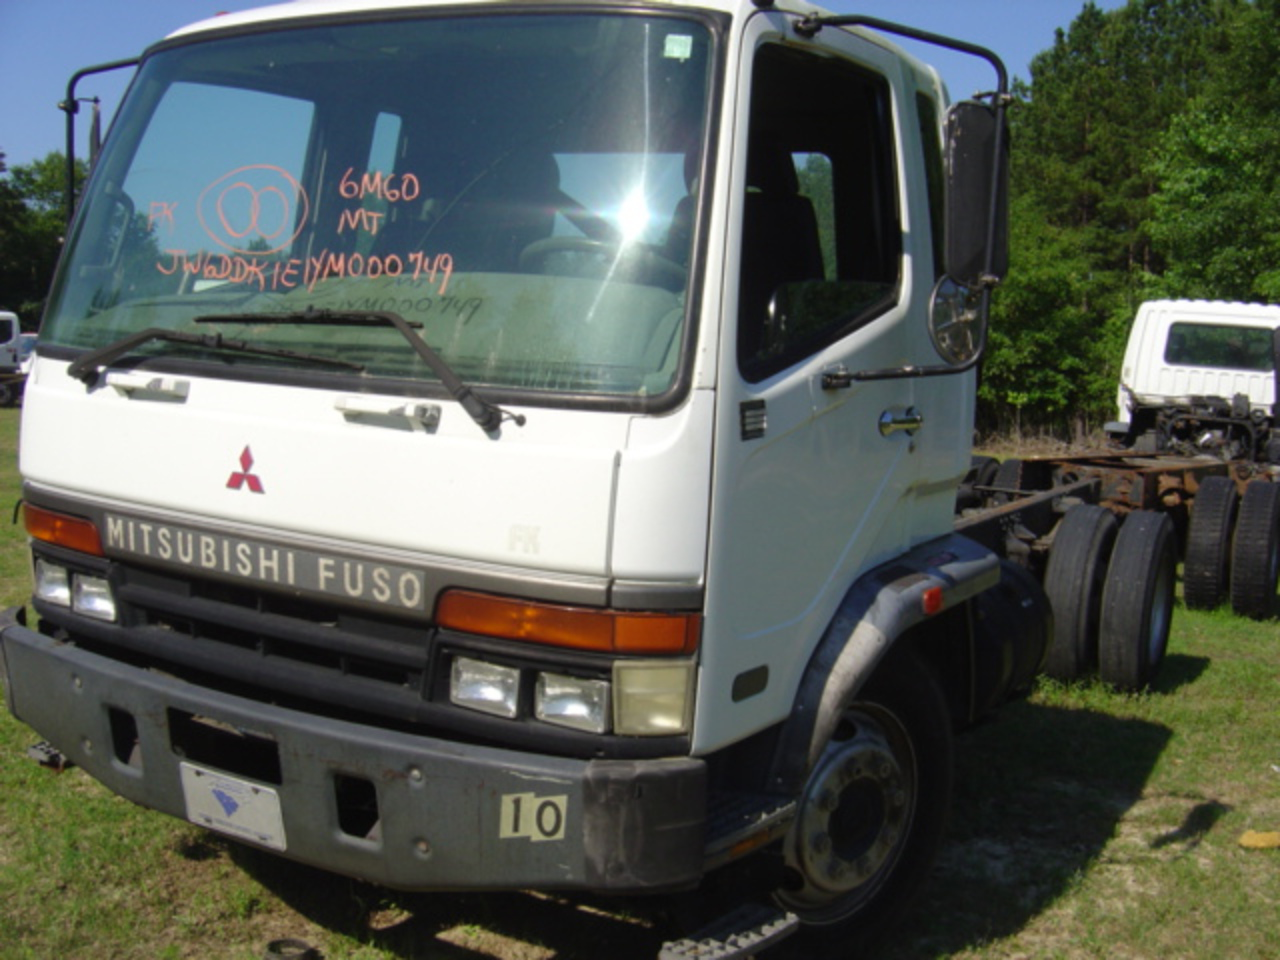 Mitsubishi Fuso FK Truck Manual 2000 Used | Busbee's Trucks and Parts